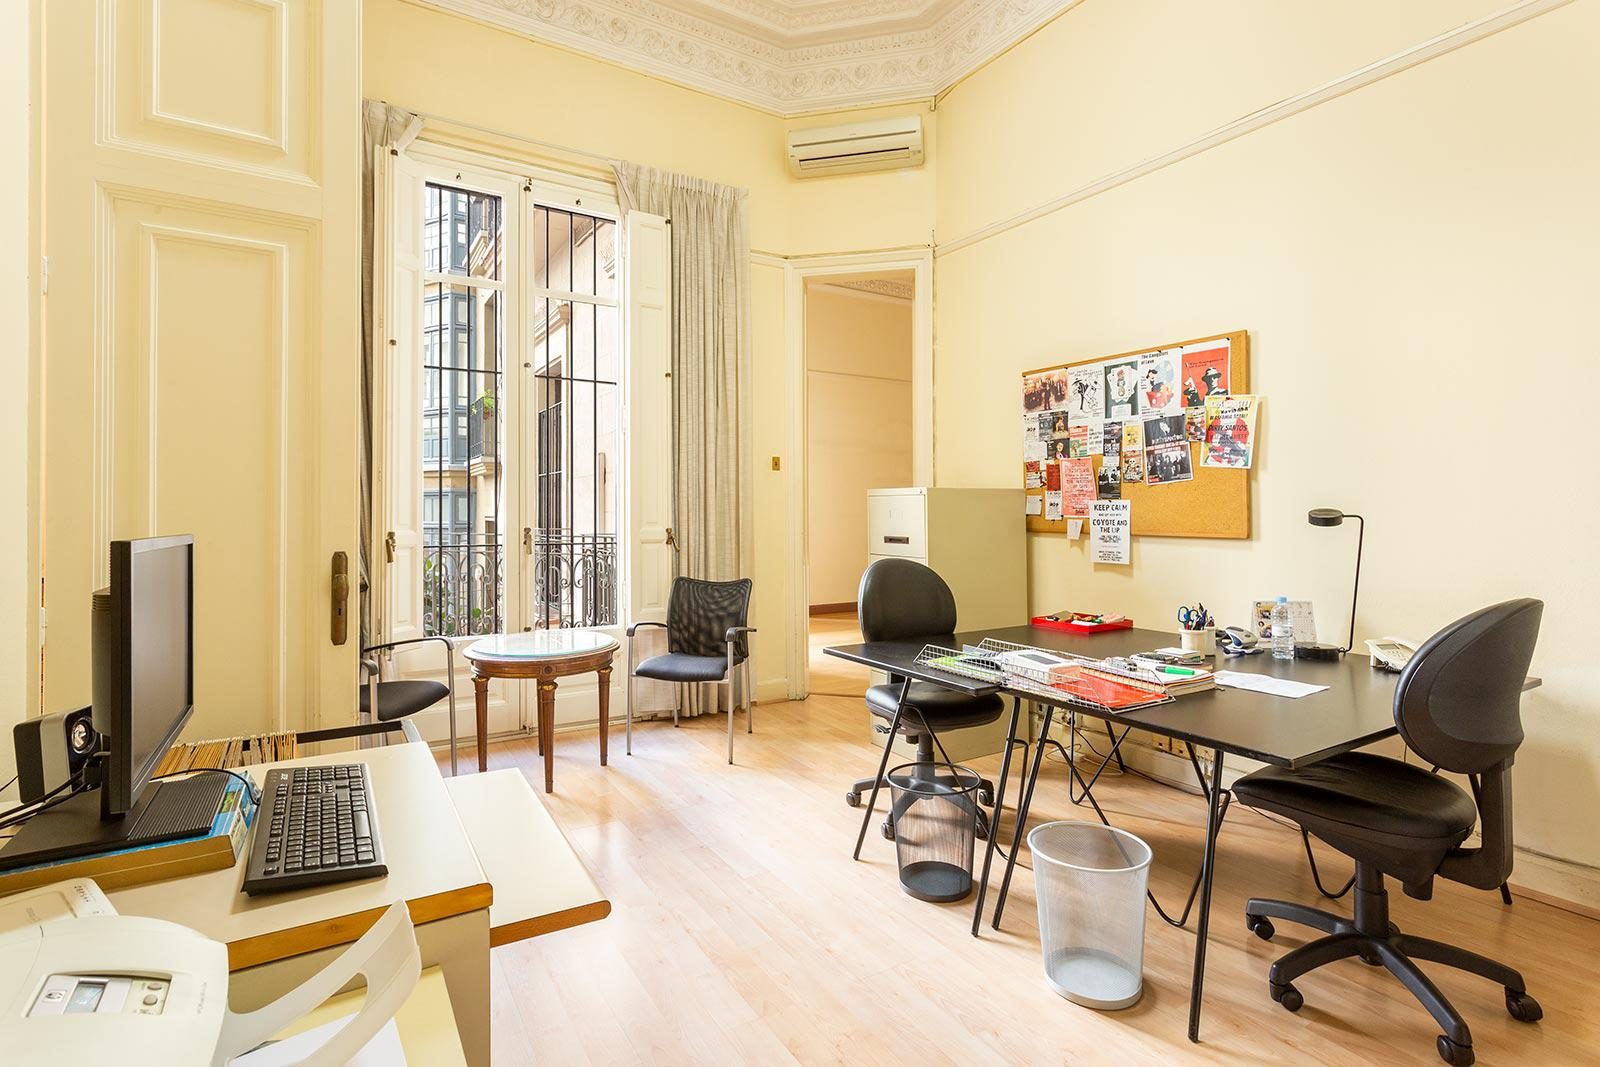 214993 Apartment for sale in Eixample, Dreta Eixample 2